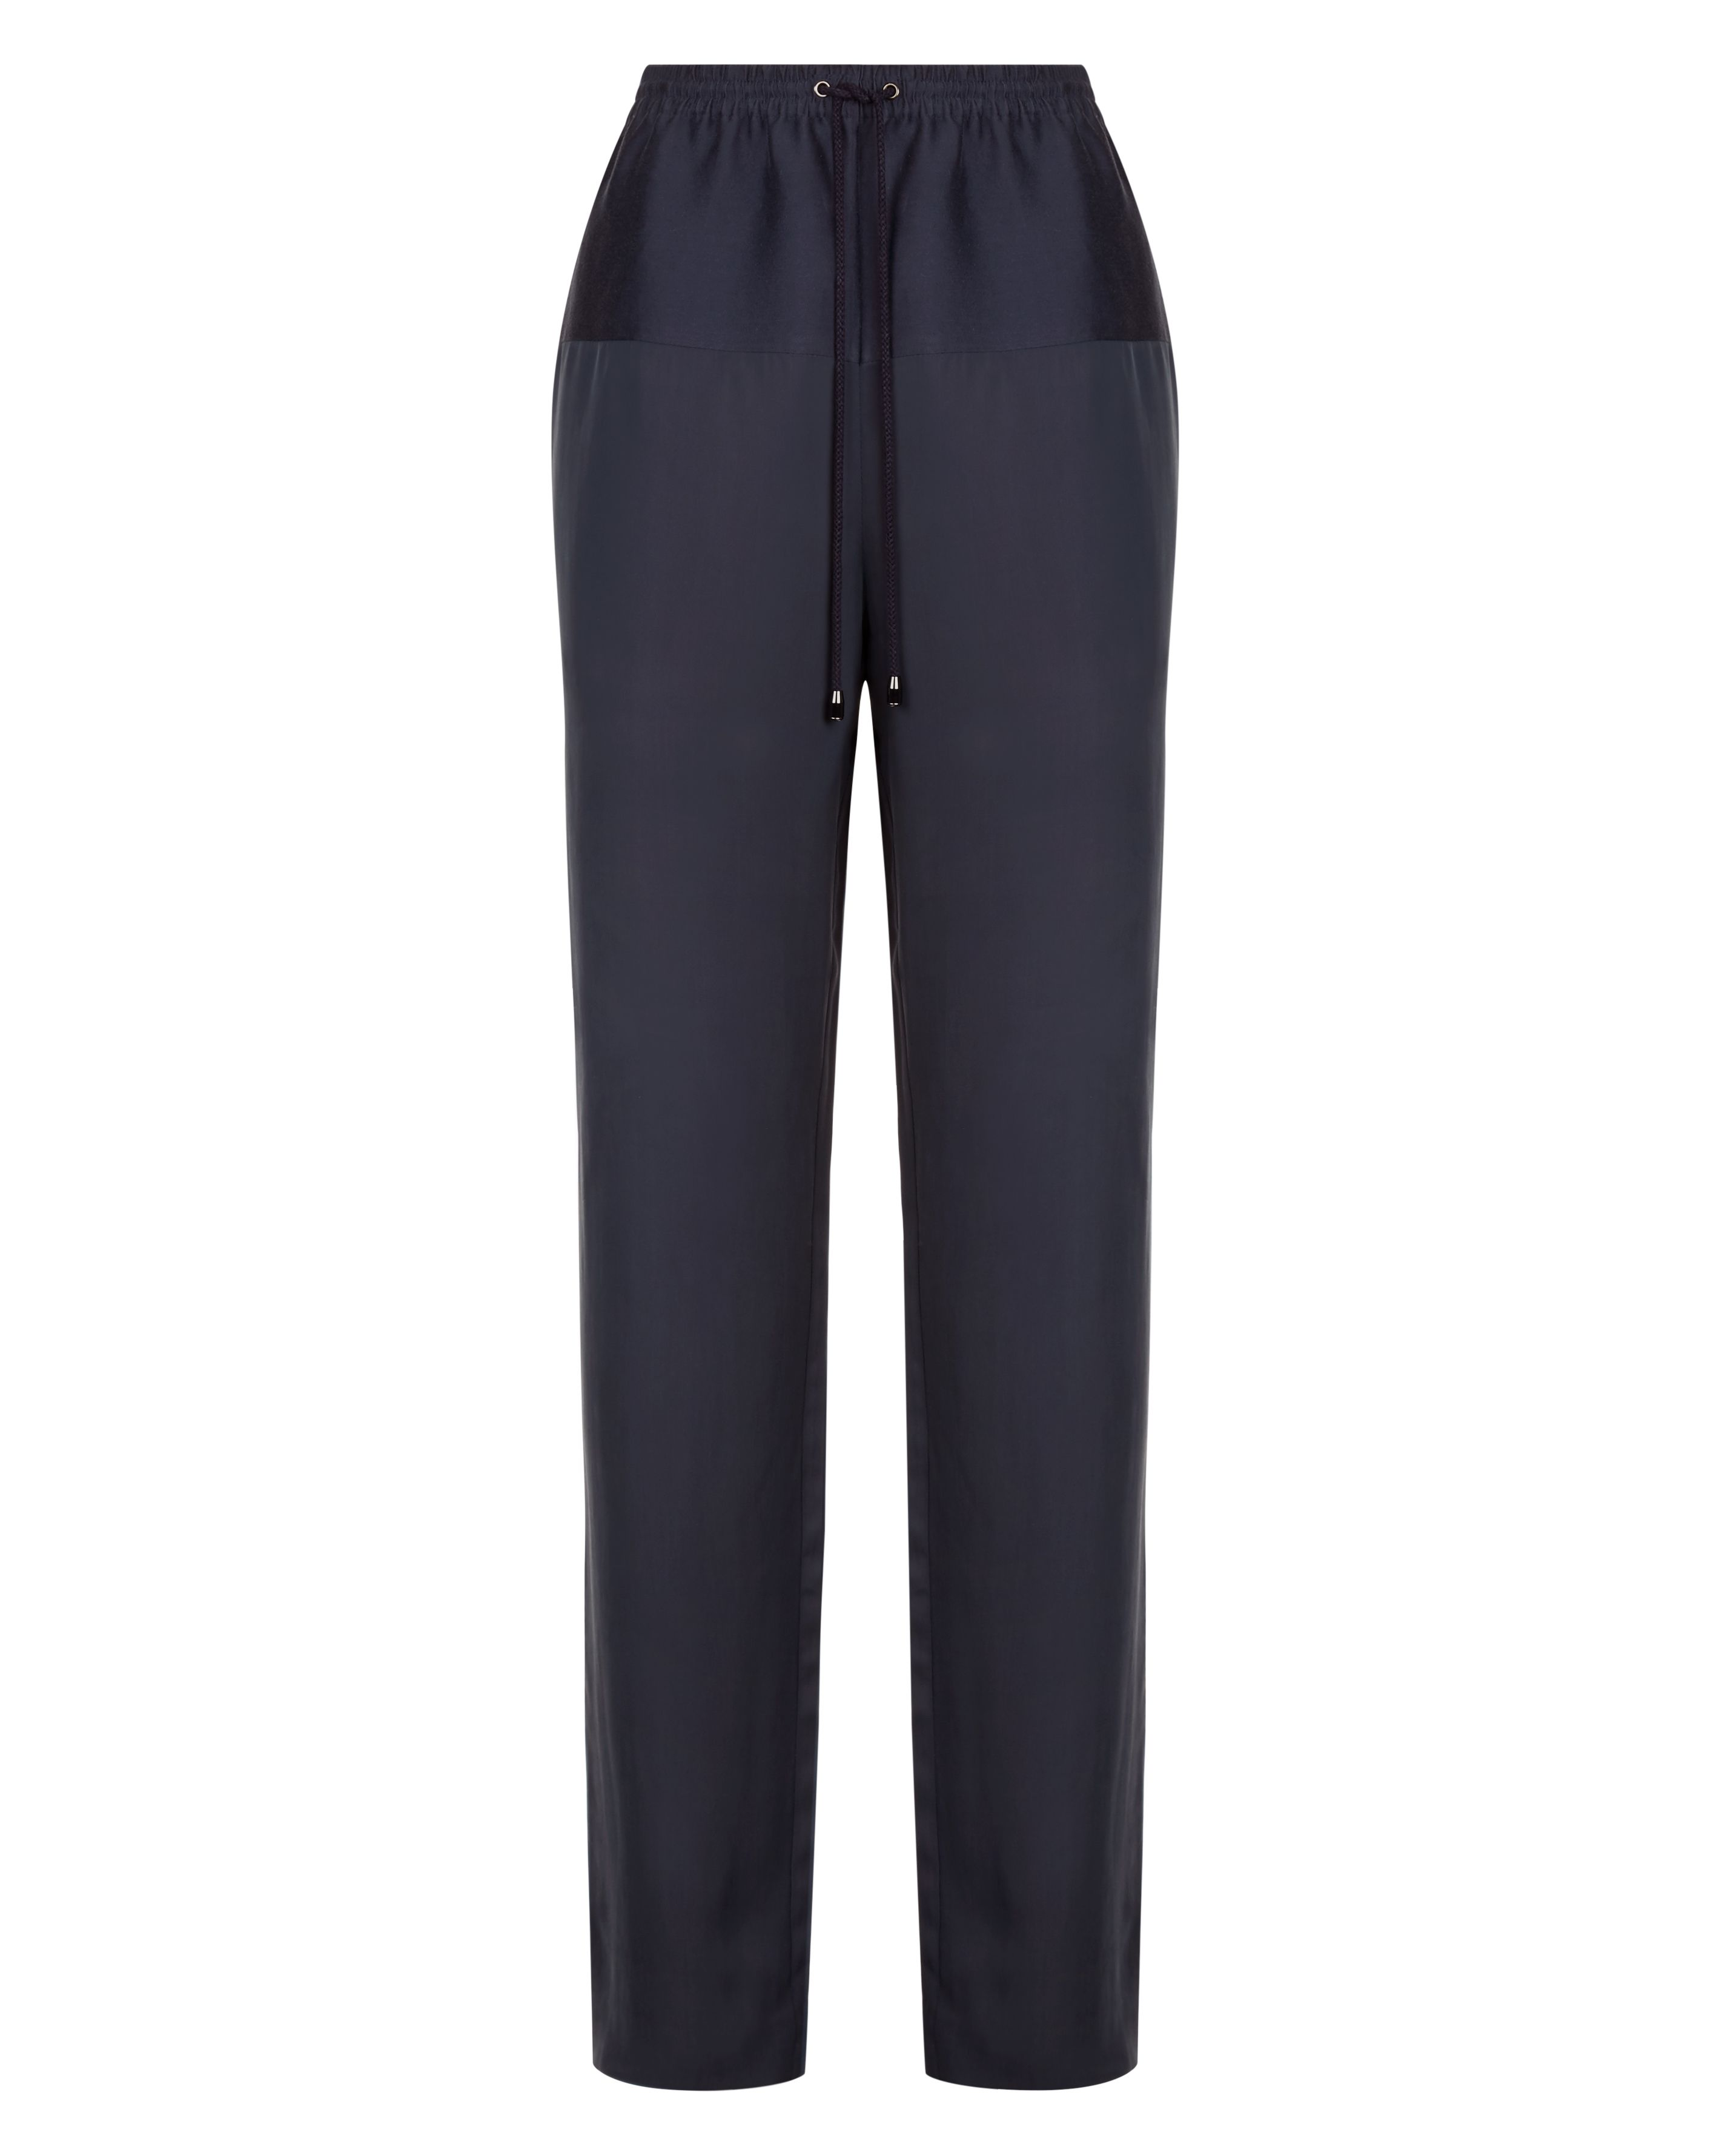 Jaeger Contrast Fabric Trousers, Blue